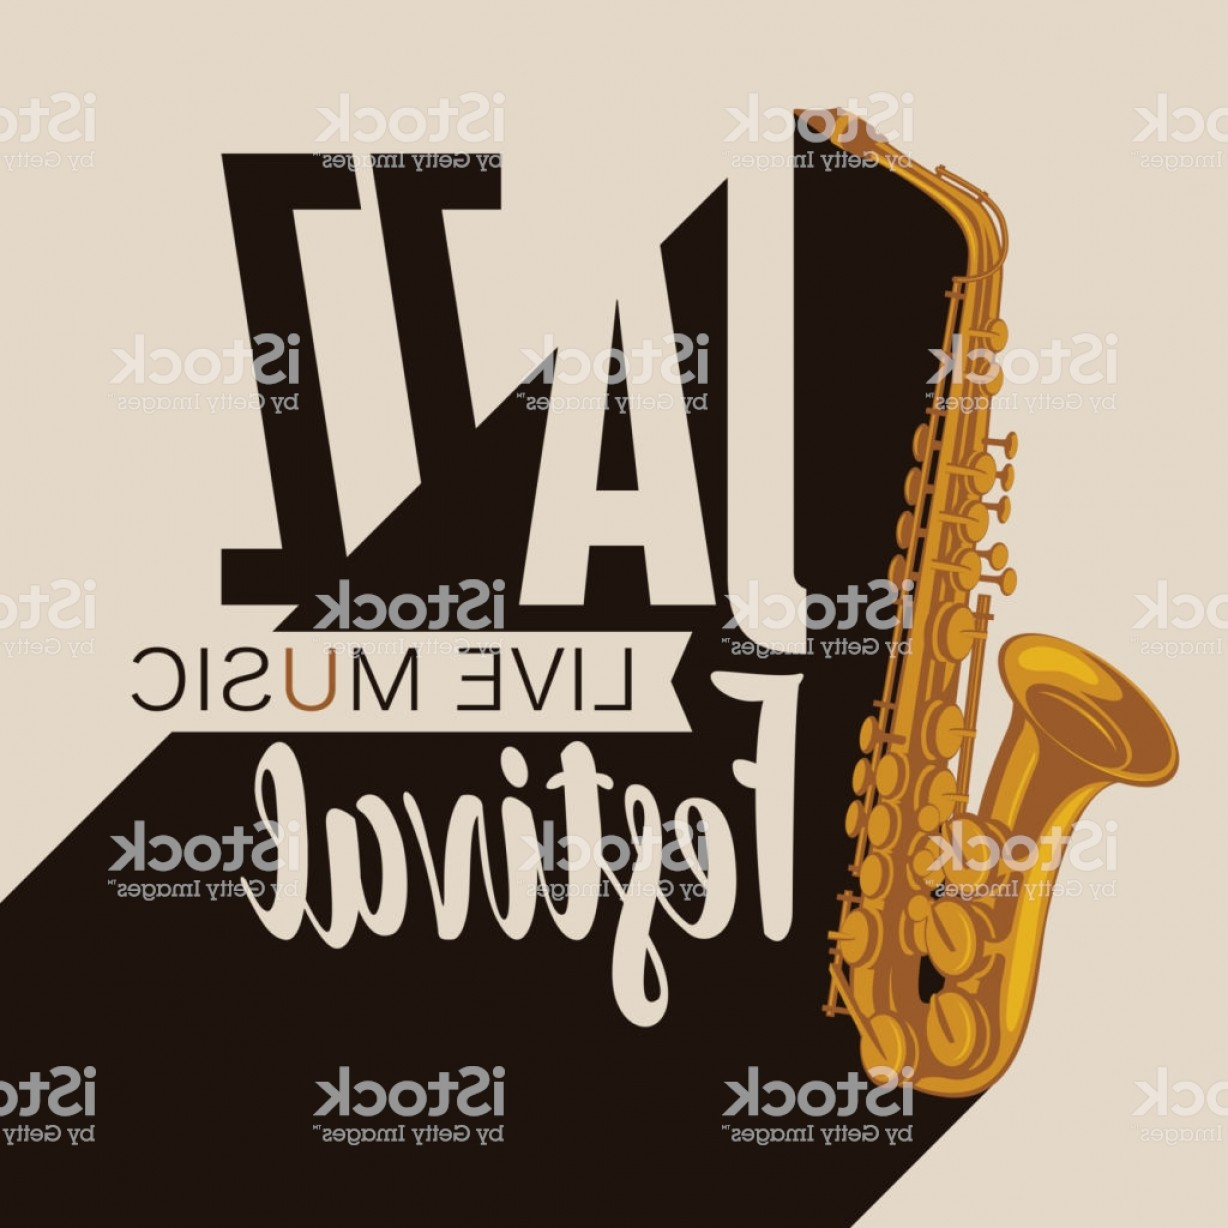 Saxophone Vector: Poster For A Jazz Music Festival With A Saxophone Gm